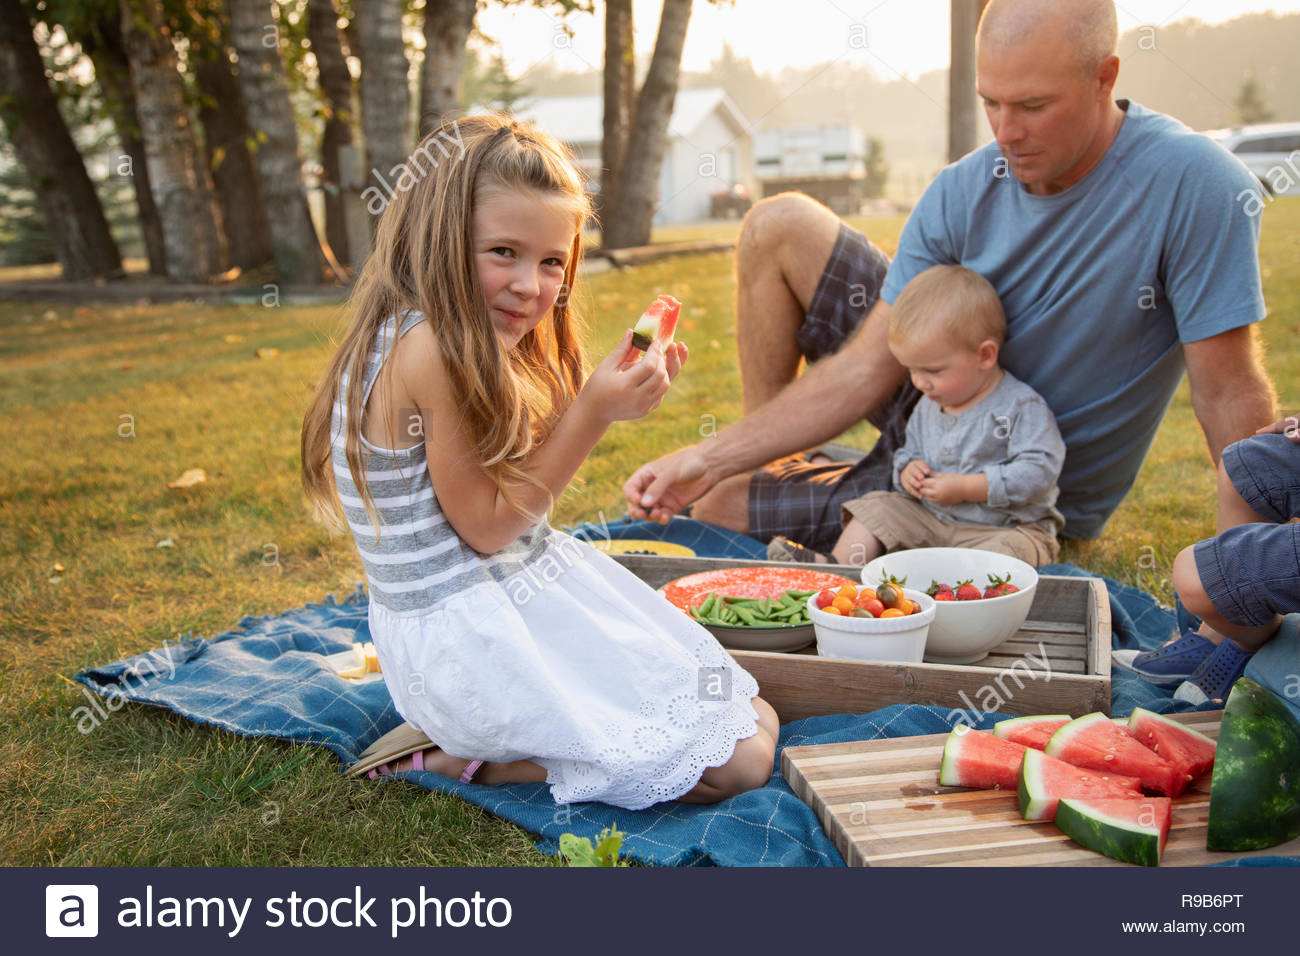 Portrait happy girl eating watermelon, enjoying picnic with family - Stock Image